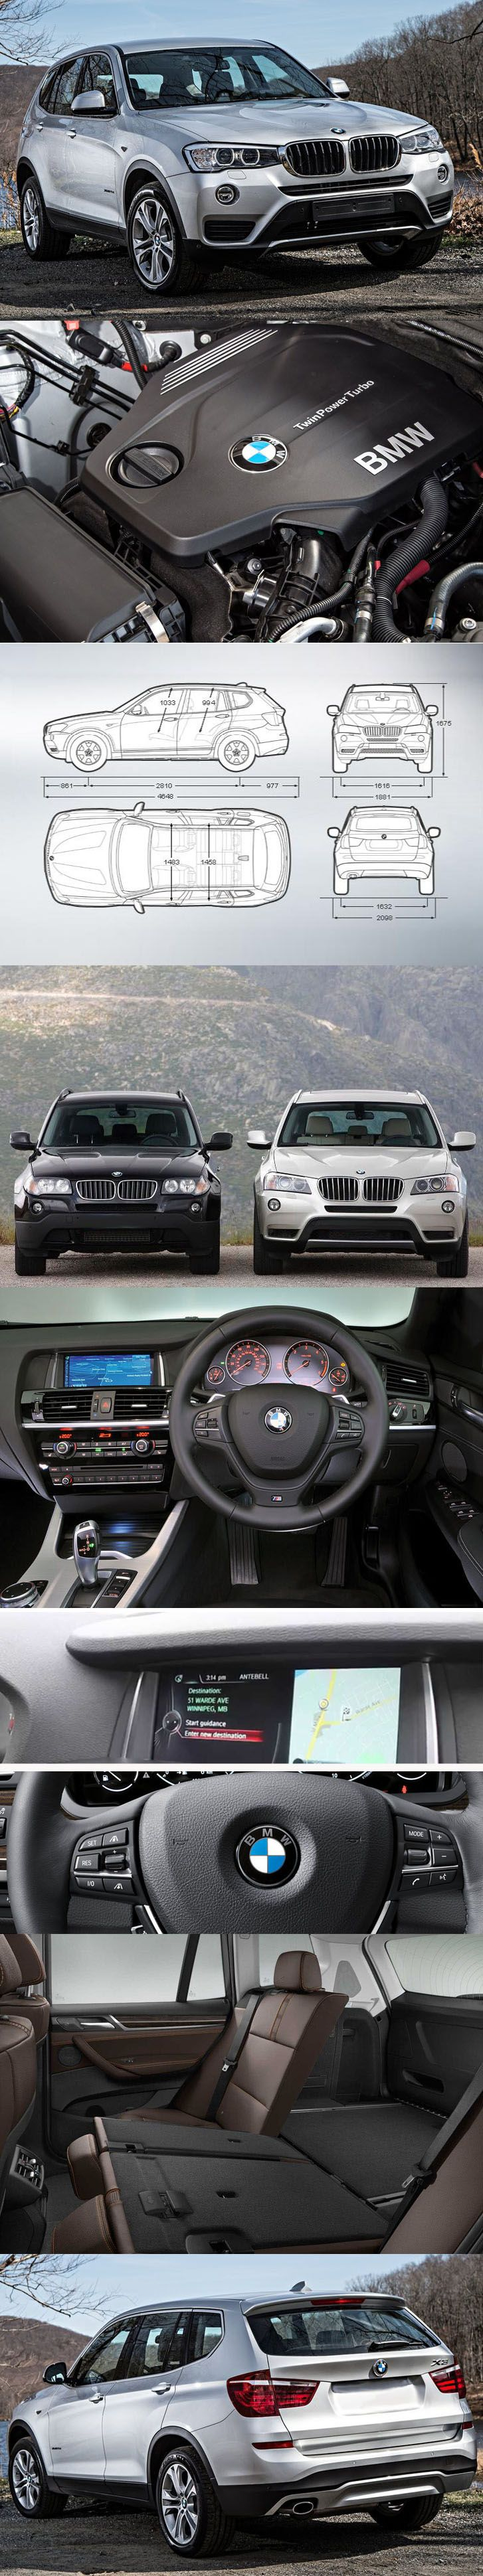 Why Everyone Loves #BMW #X3 Engine? For more read: www.enginecompare.co.uk/blog/everyone-loves-bmw-x3-engine/